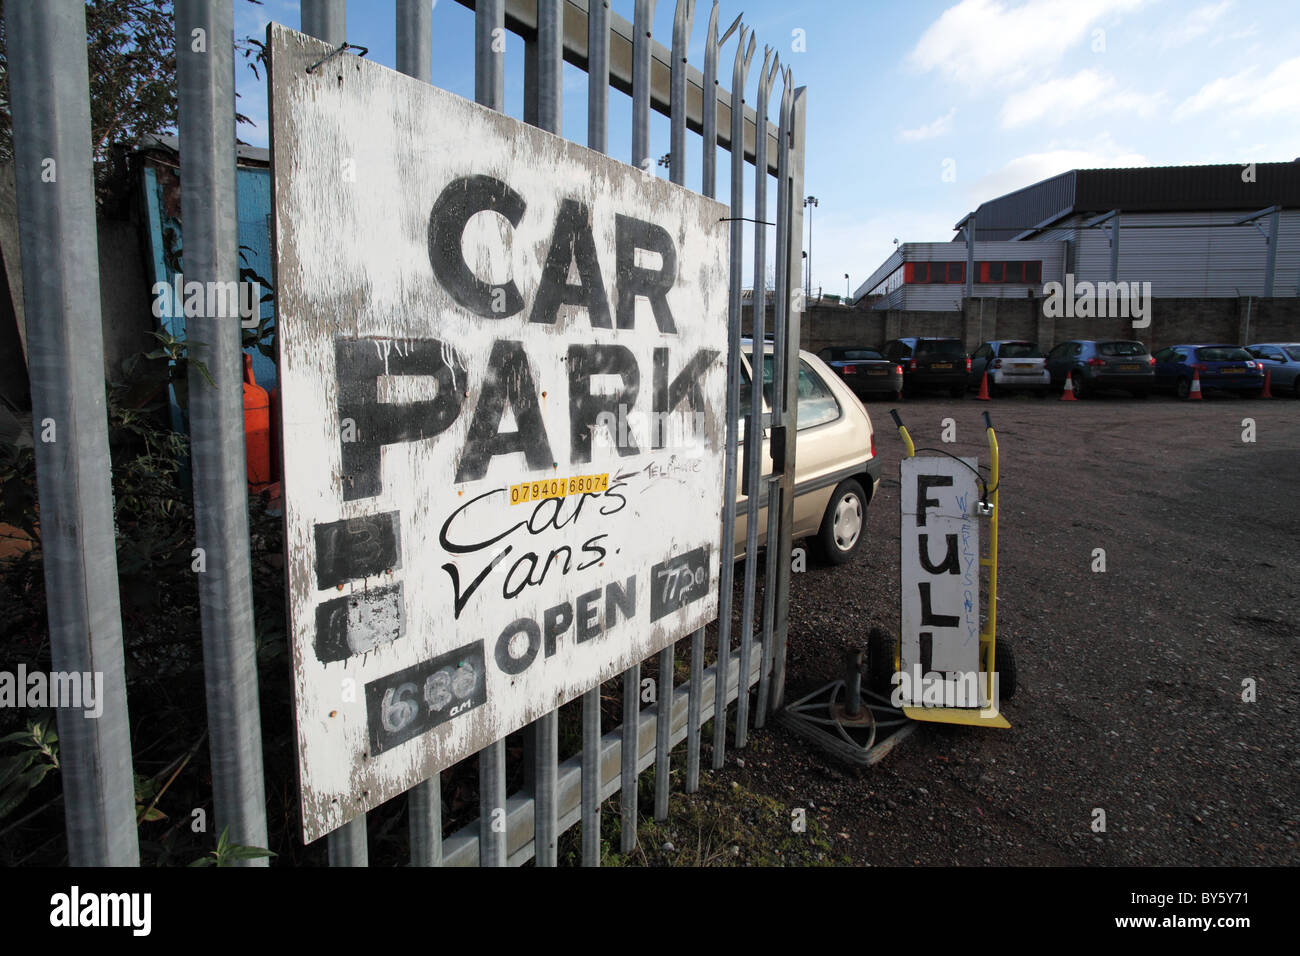 Carpark sign in the docklands. Canary Wharf. London - Stock Image